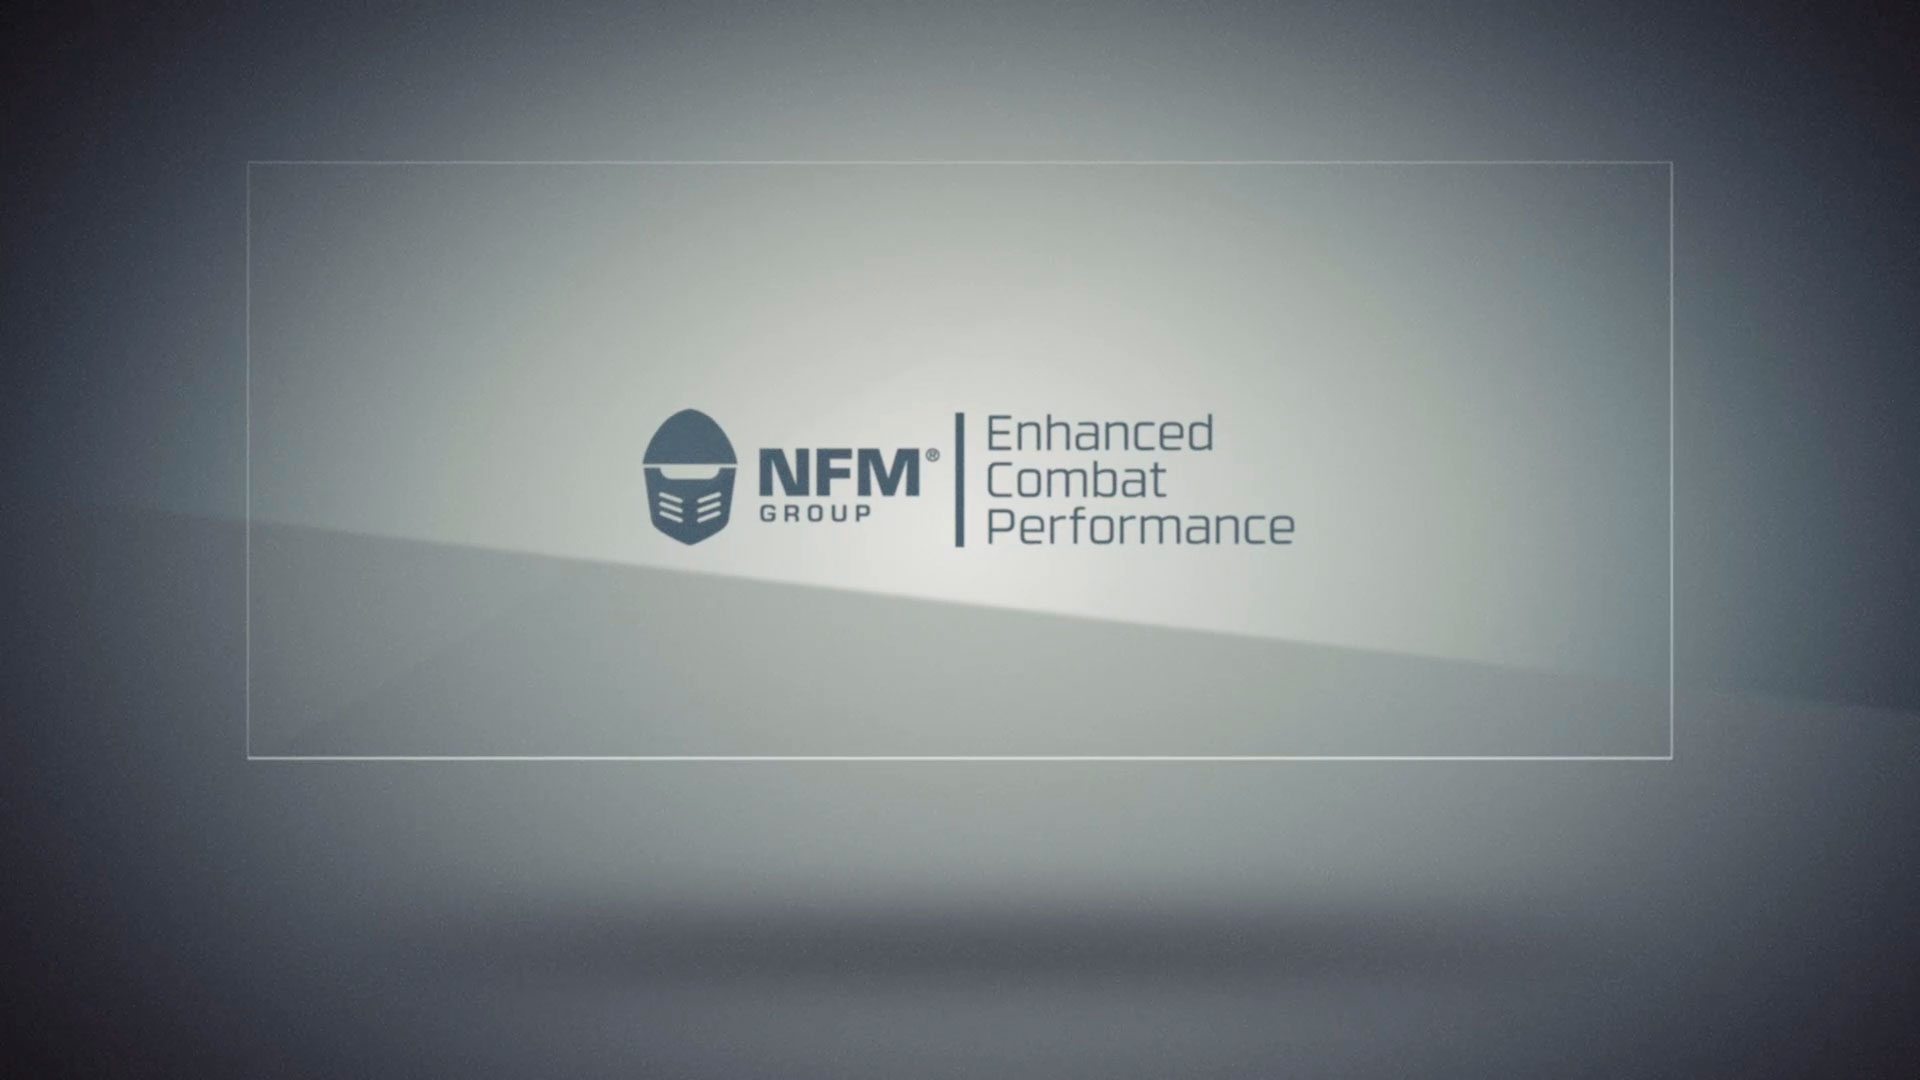 NFM Corporate Capabilities